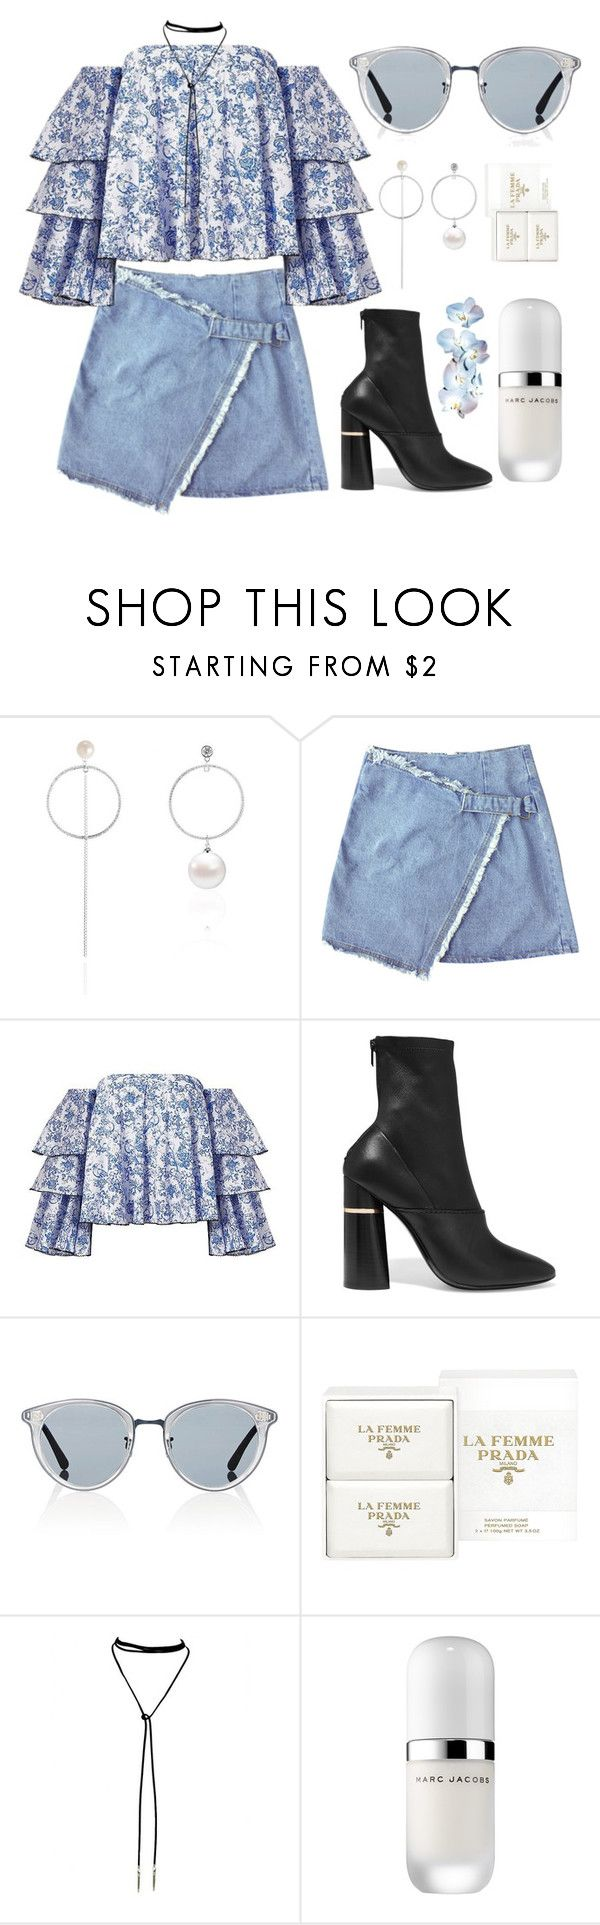 """July 4, 2017"" by madelynn-gv ❤ liked on Polyvore featuring Caroline Constas, 3.1 Phillip Lim, Oliver Peoples, Prada, Bølo and Marc Jacobs"